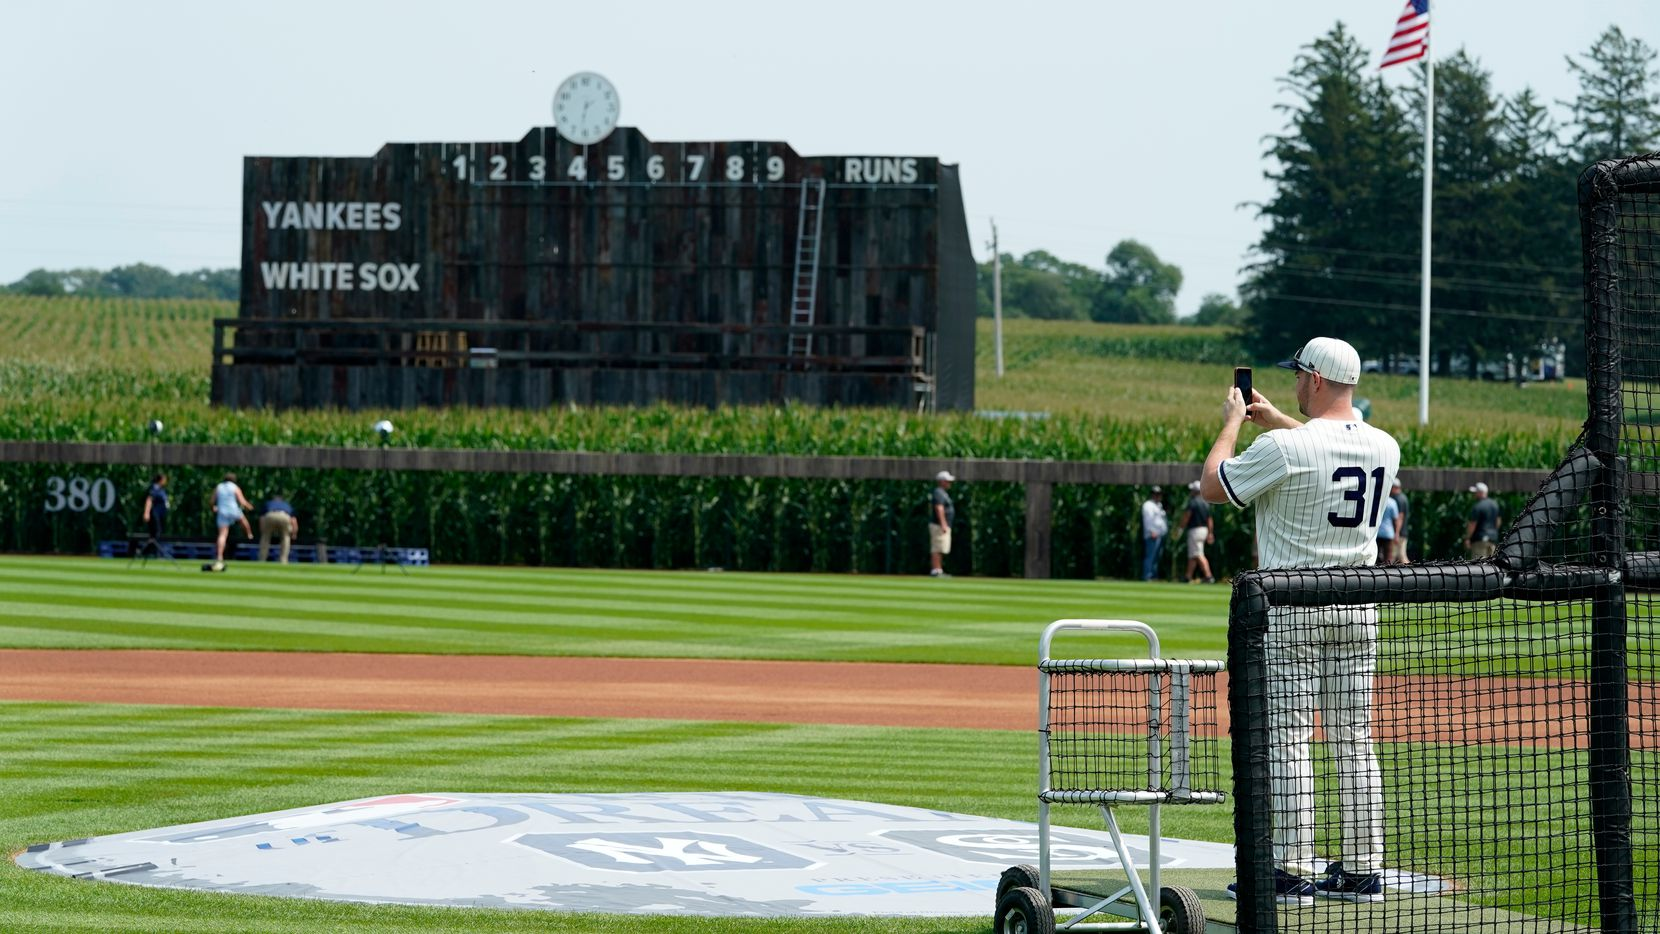 Chicago White Sox relief pitcher Liam Hendriks takes a photo on the field before a baseball game against the New York Yankees, Thursday, Aug. 12, 2021, in Dyersville, Iowa.